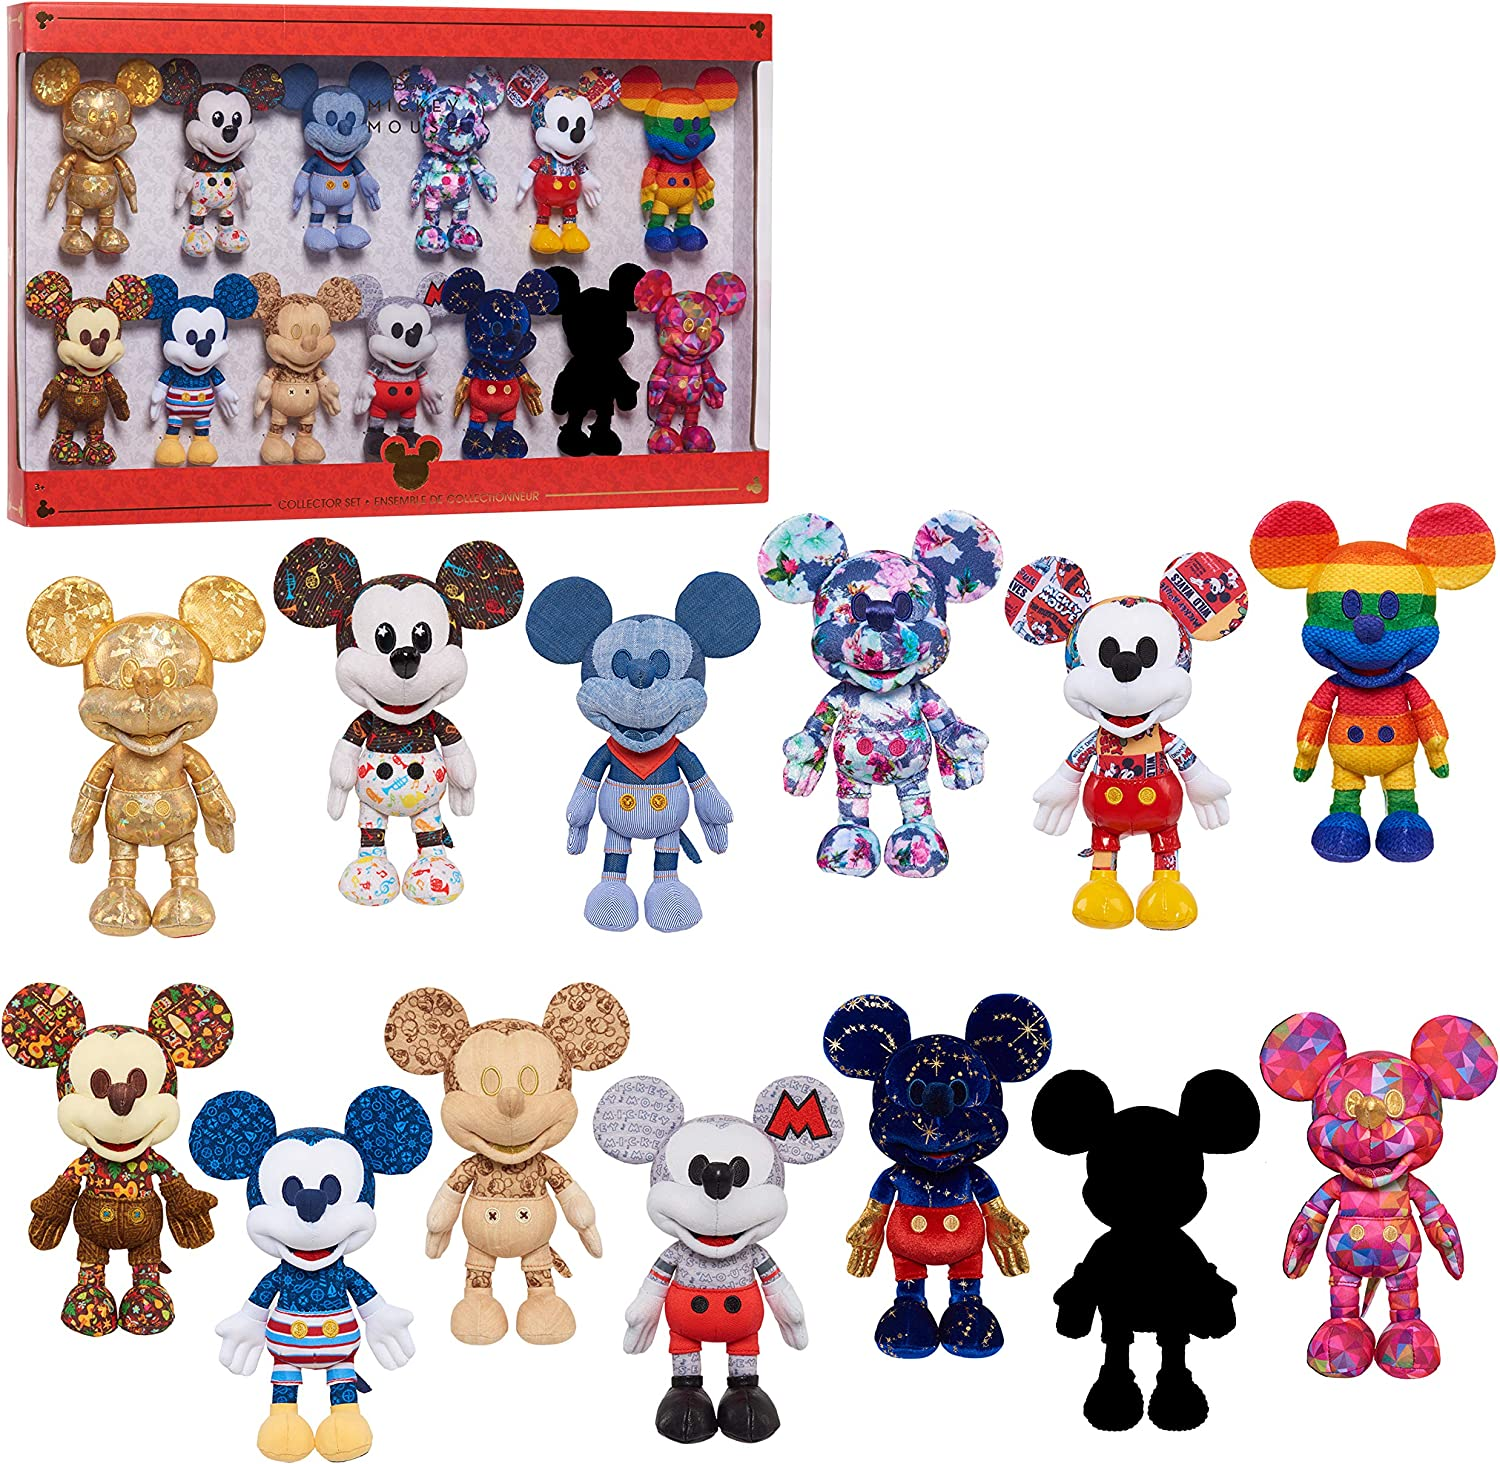 Disney Year of the Mouse Small Plush - 13 pk; Amazon Exclusive